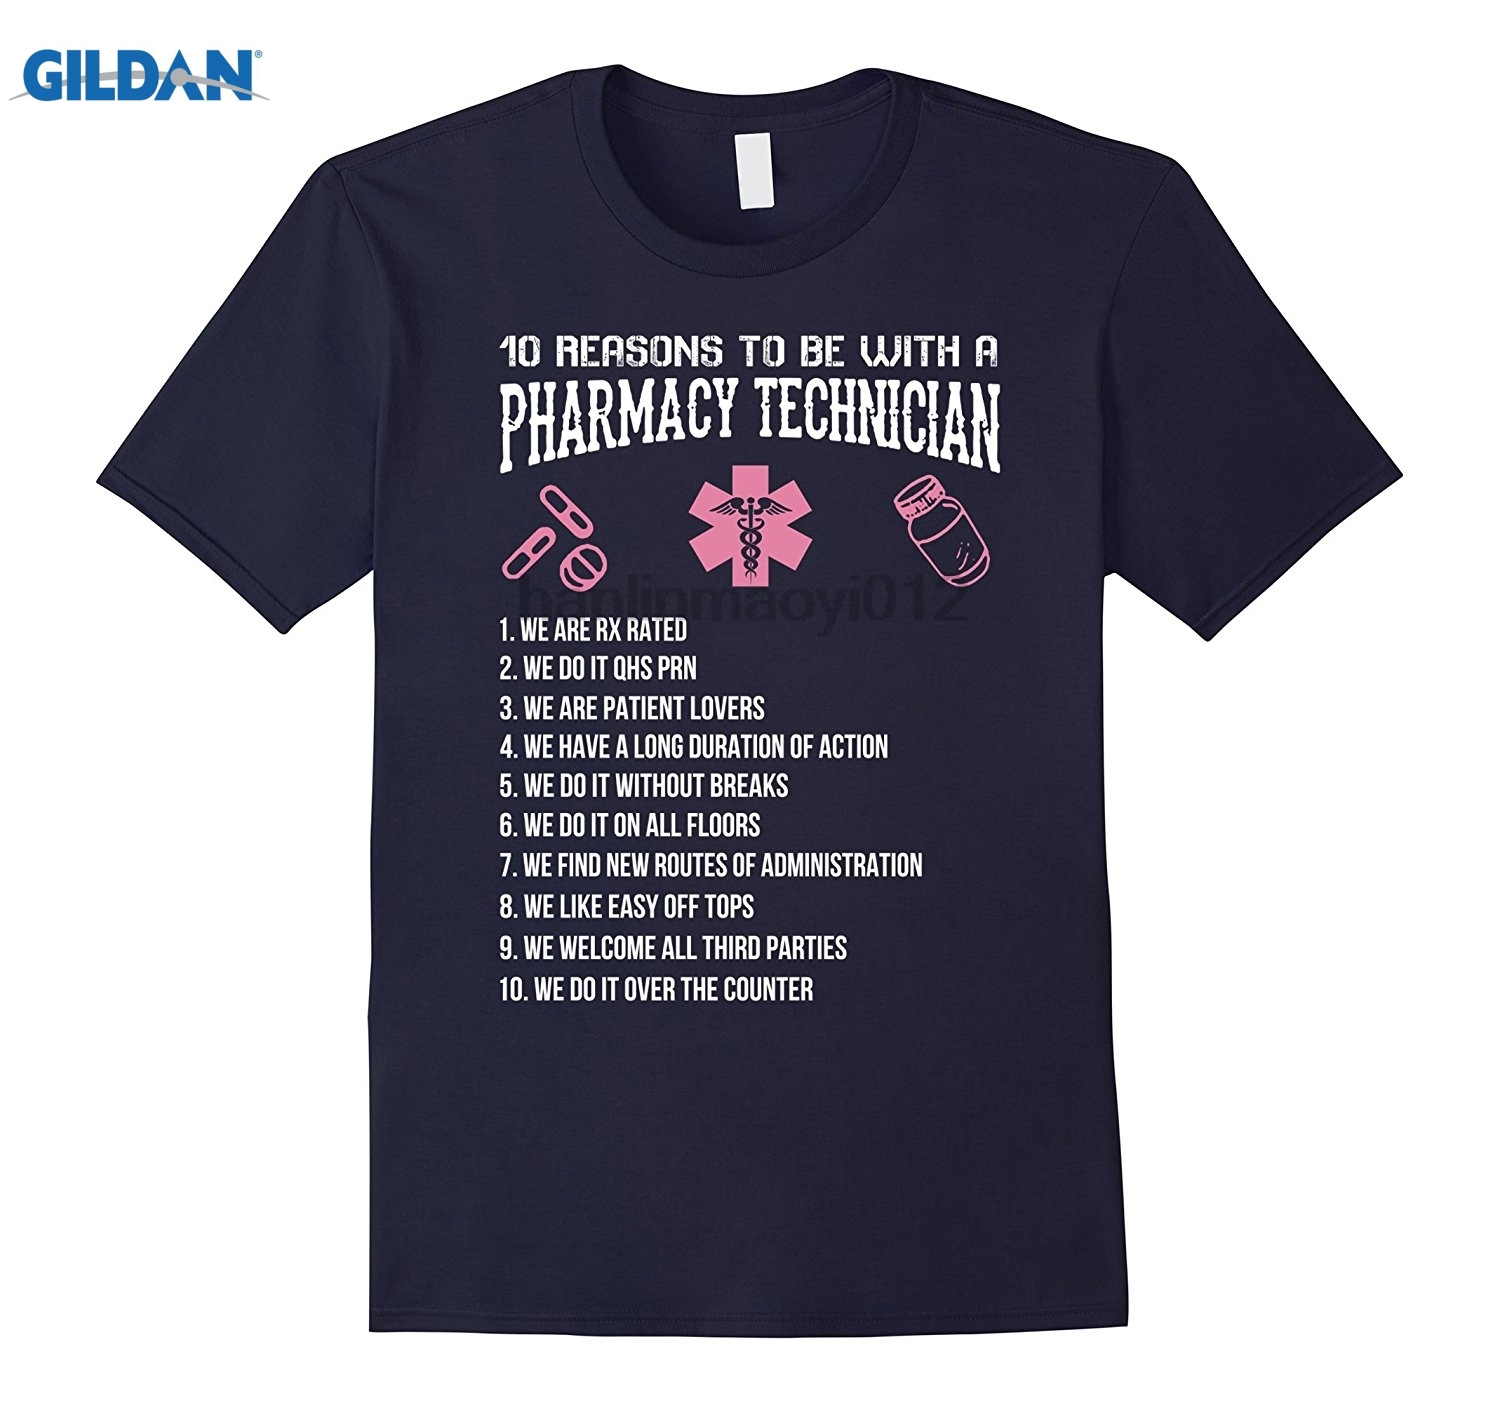 GILDAN 10 Reasons To Be With A Pharmacy Technician Shirt sunglasses women T-shirt ...